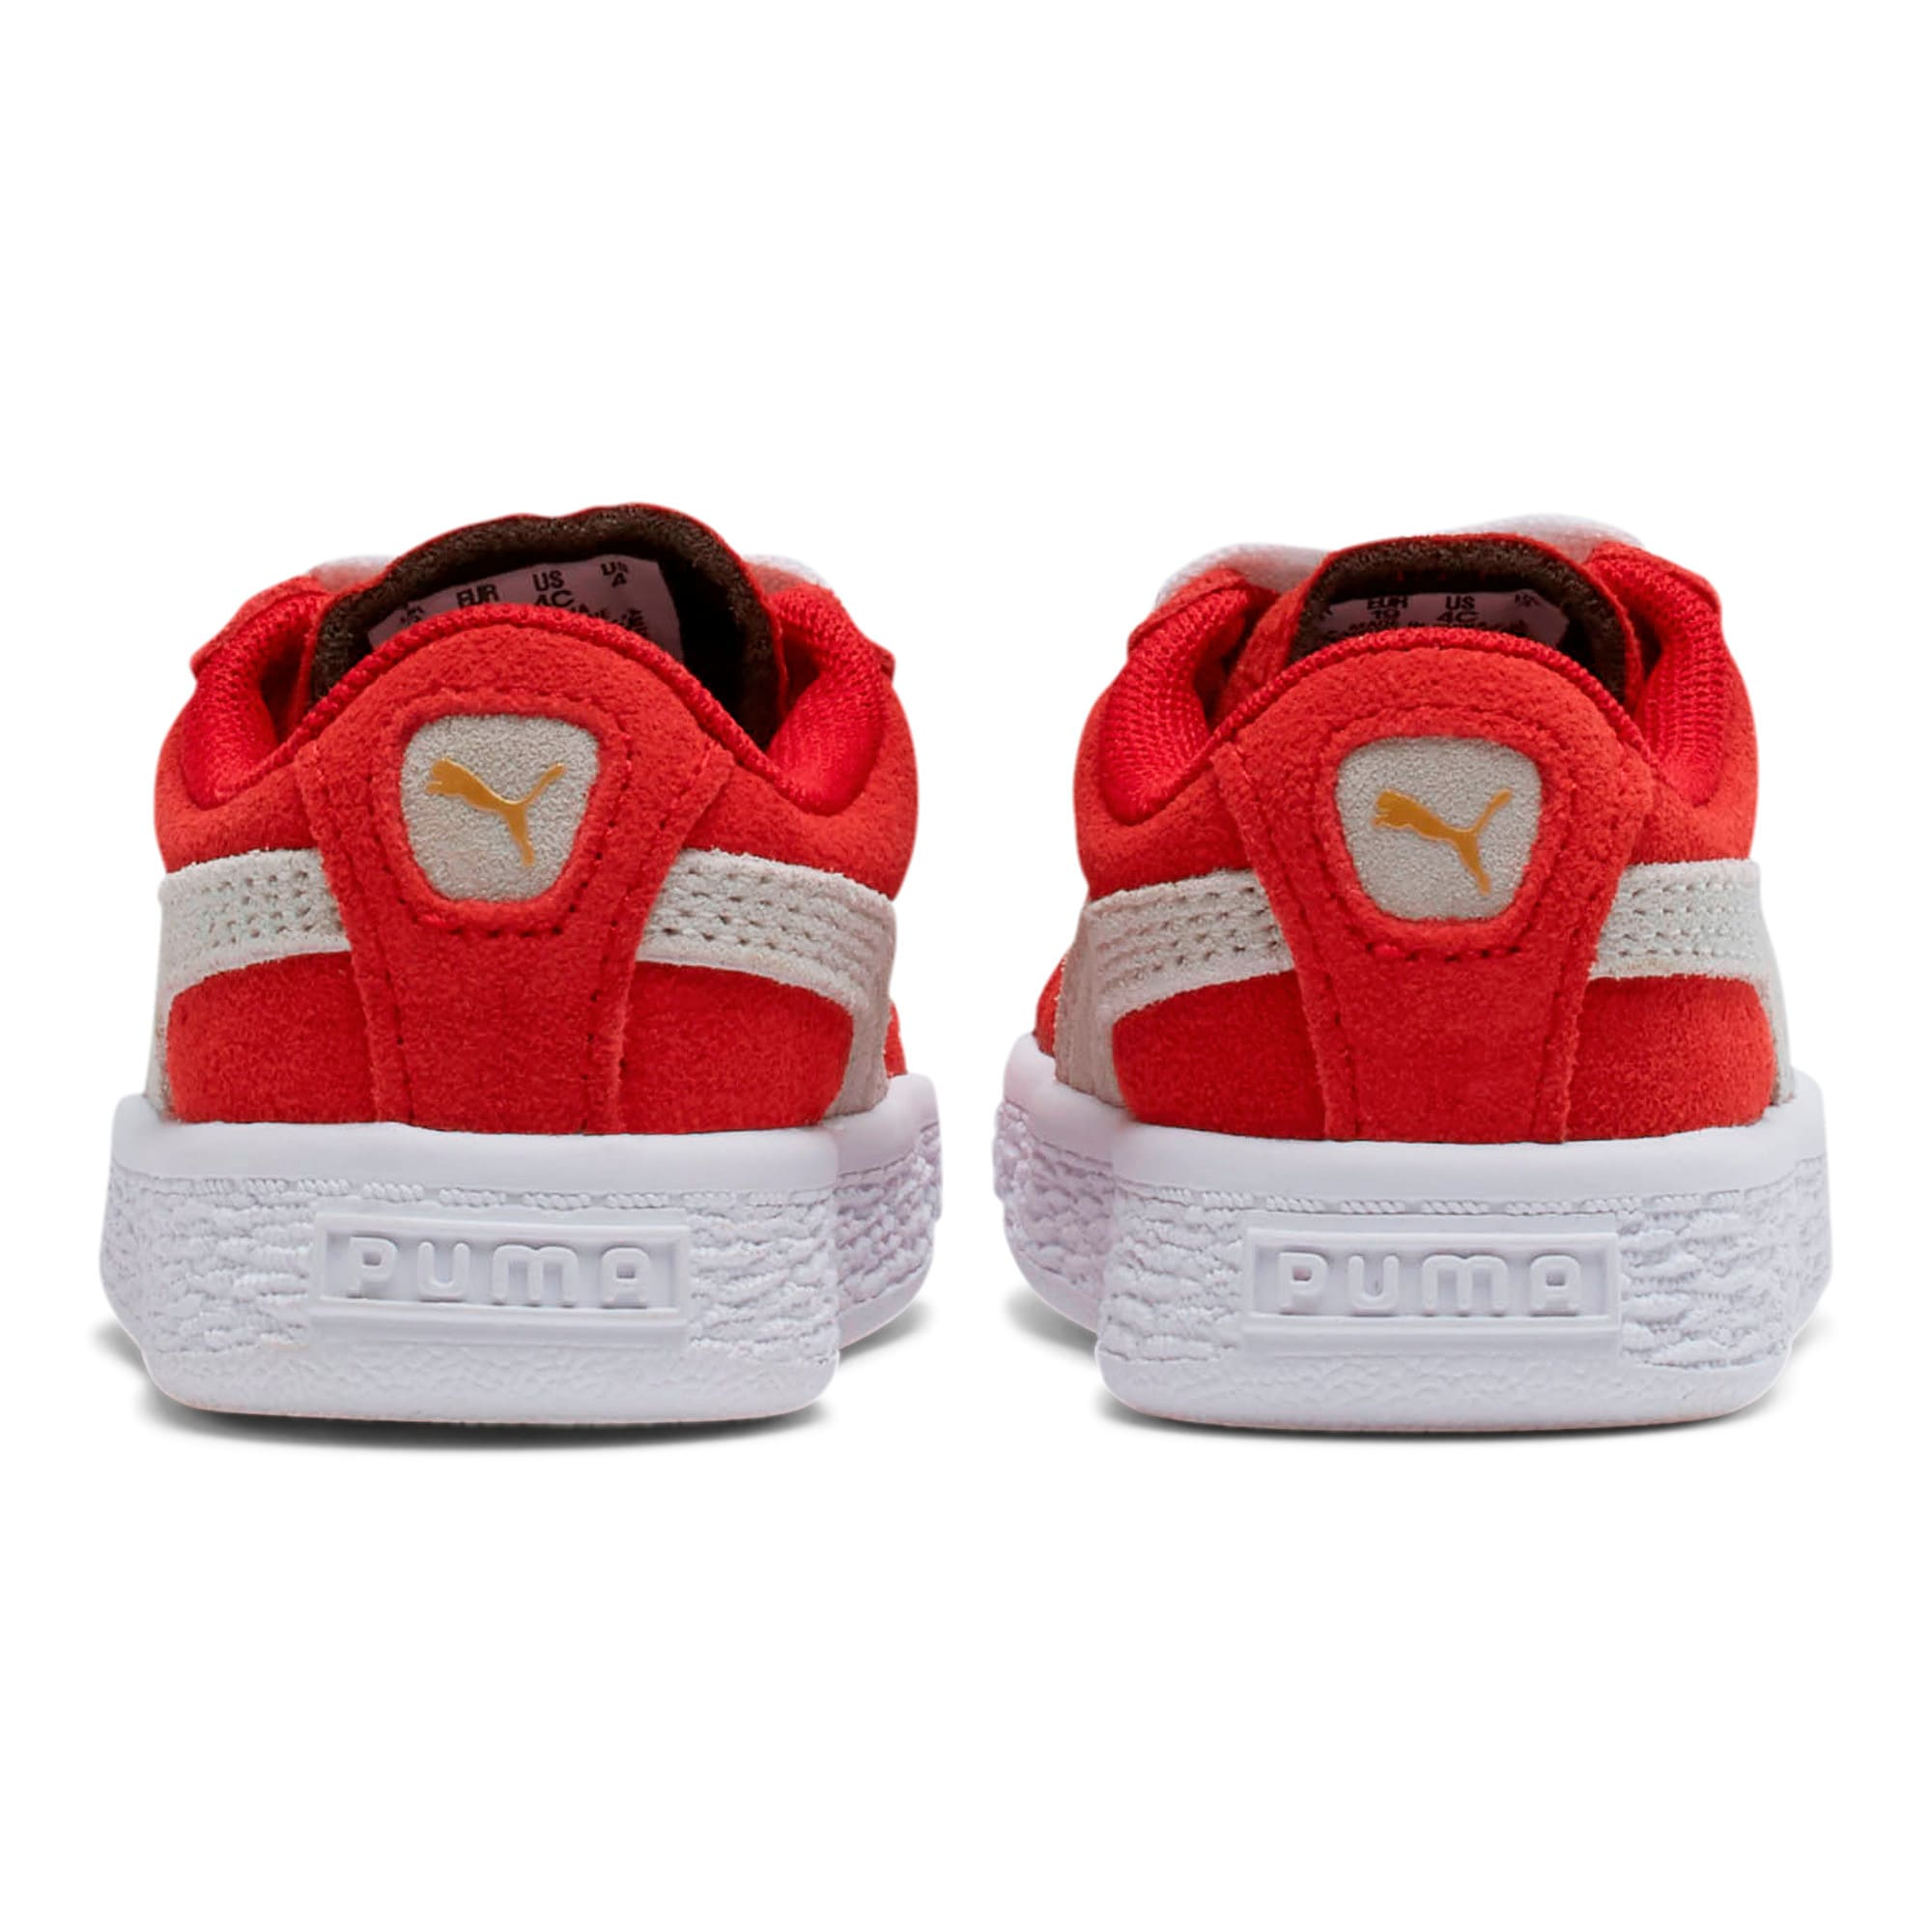 Thumbnail 3 of Puma Suede Toddler Shoes, high risk red-white, medium